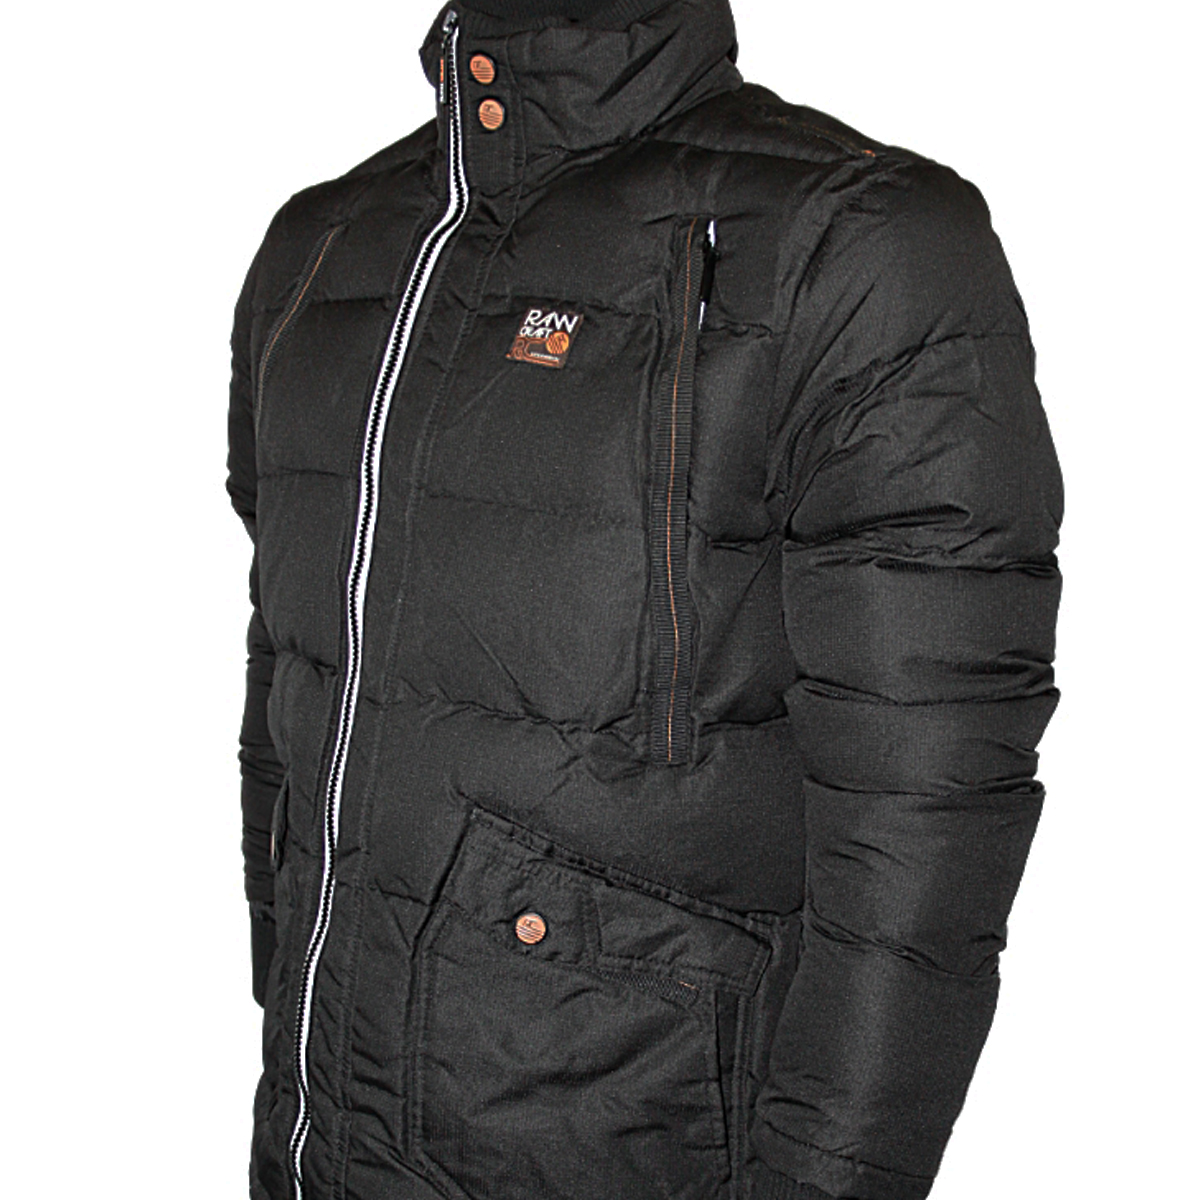 BRAND NEW MENS BLACK RAWCRAFT SIGNPOST DESIGNER BRANDED PADDED JACKET SIZES S-XL | EBay